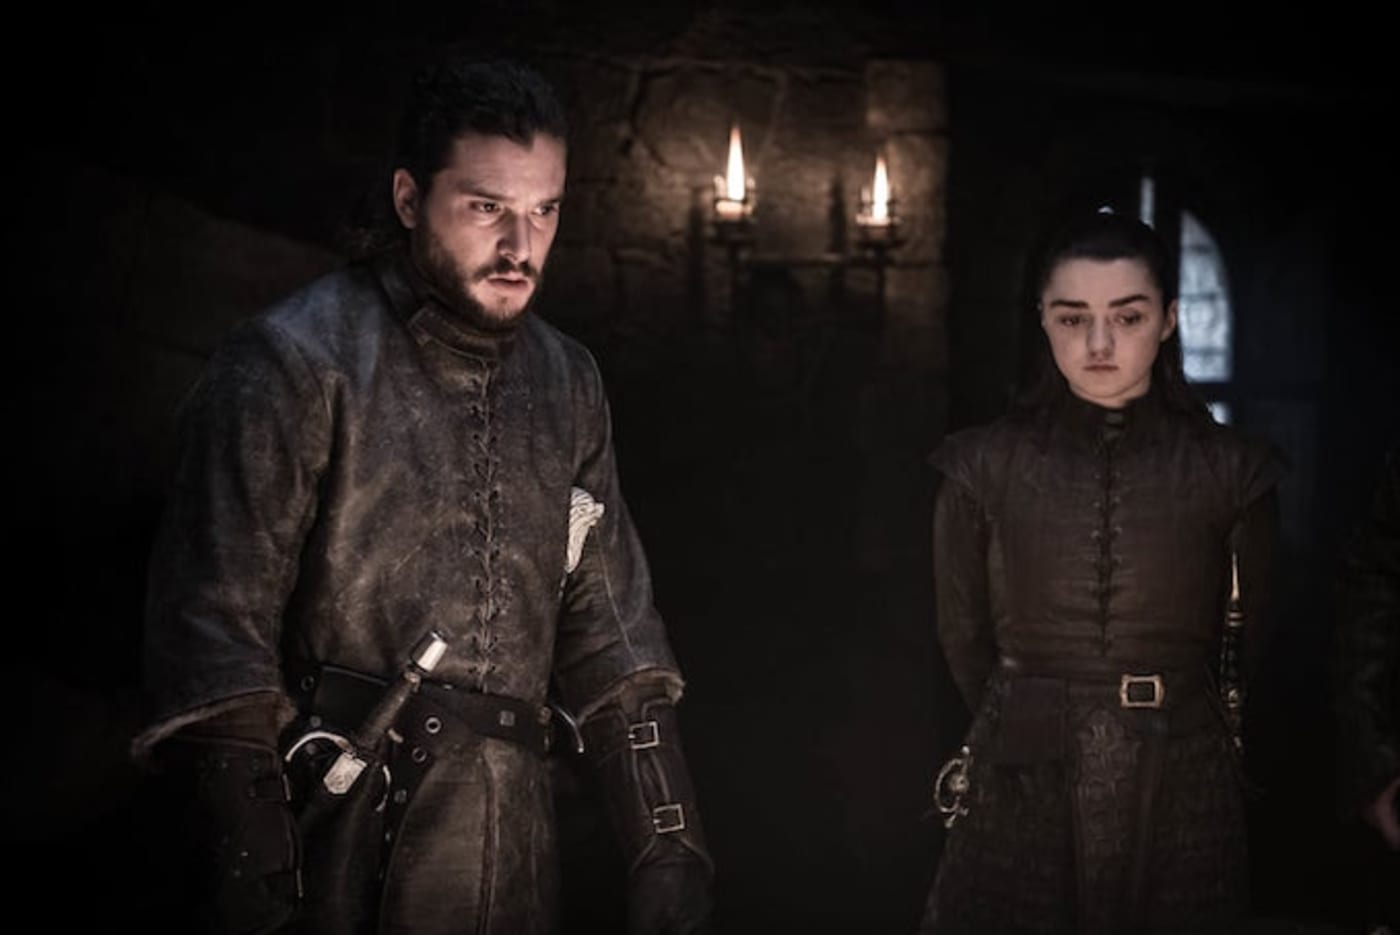 Photo from Season 8, Episode 2 of 'Game of Thrones.'